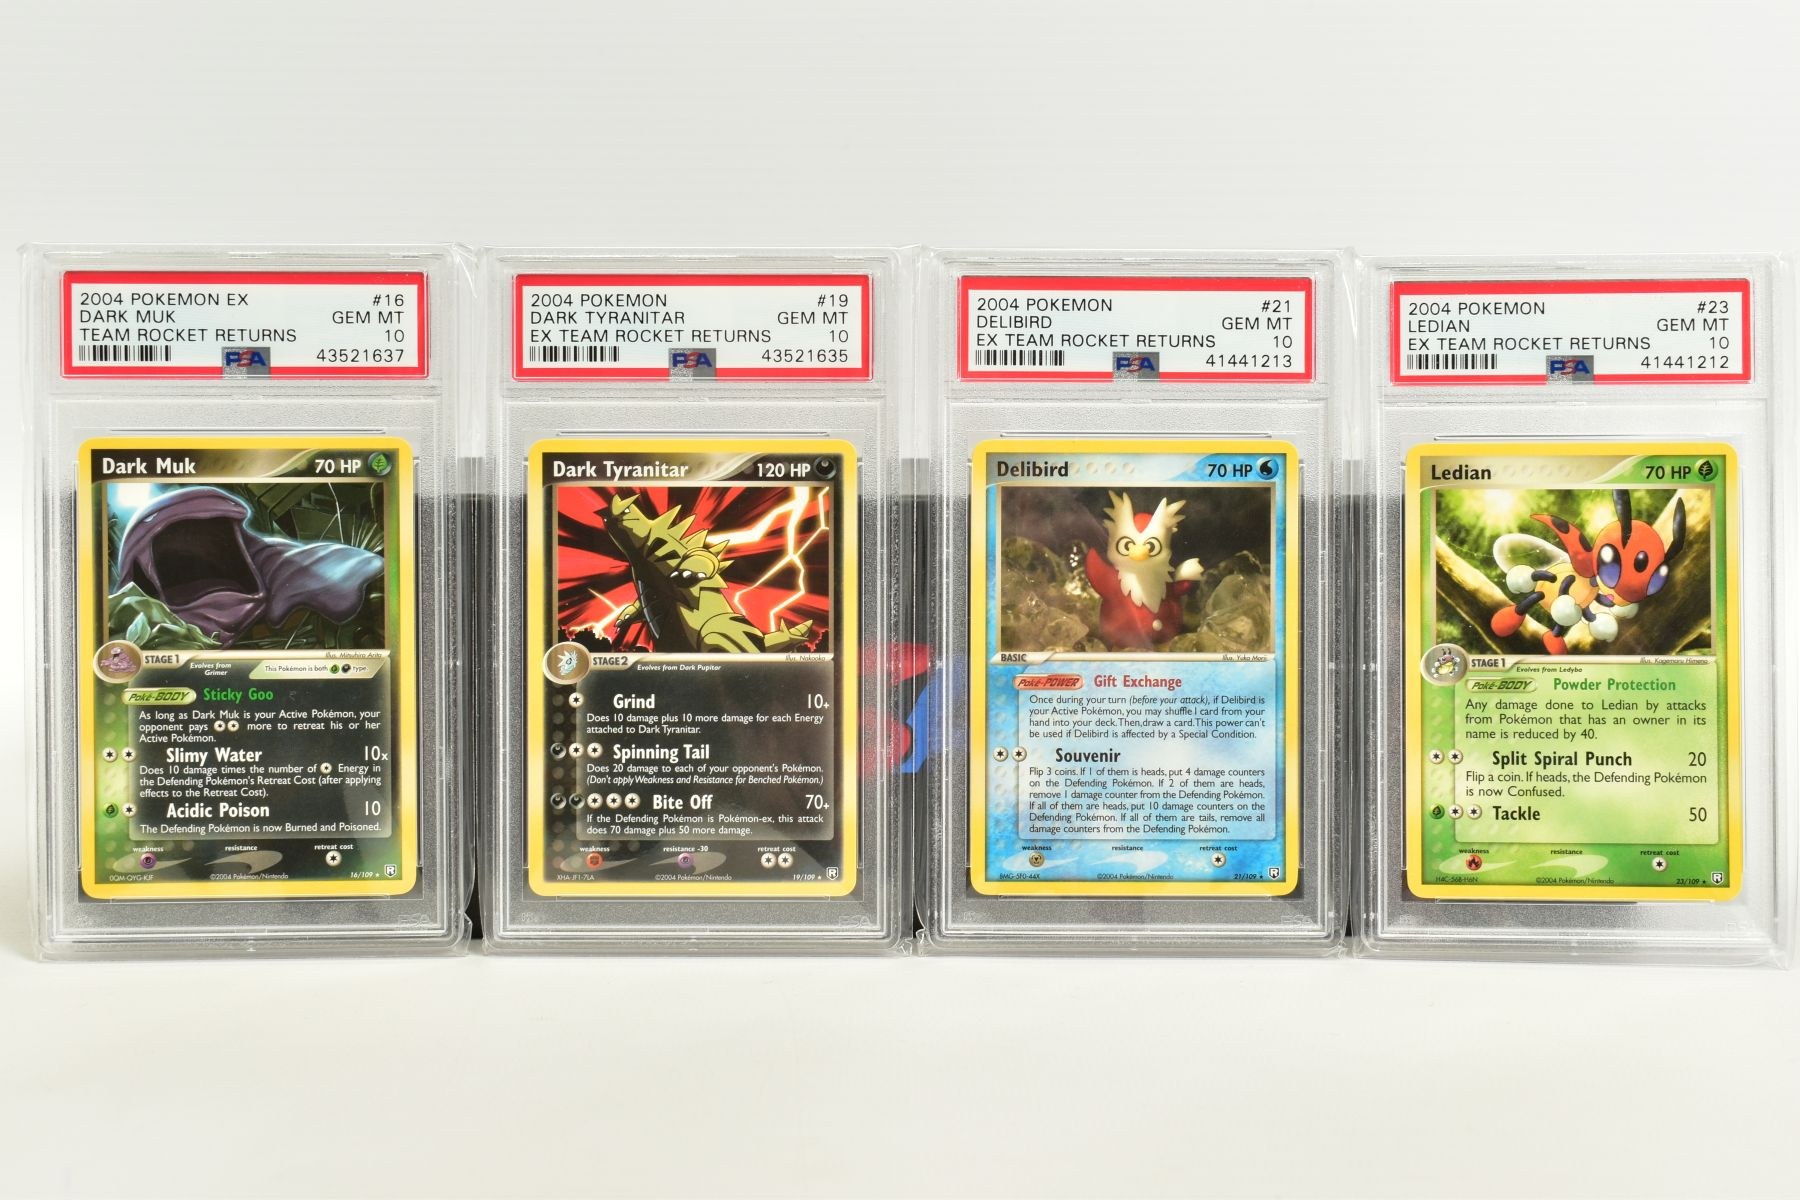 A QUANTITY OF PSA GRADED POKEMON EX TEAM ROCKET RETURNS AND EX RUBY & SAPPHIRE SET CARDS, all are - Image 3 of 15